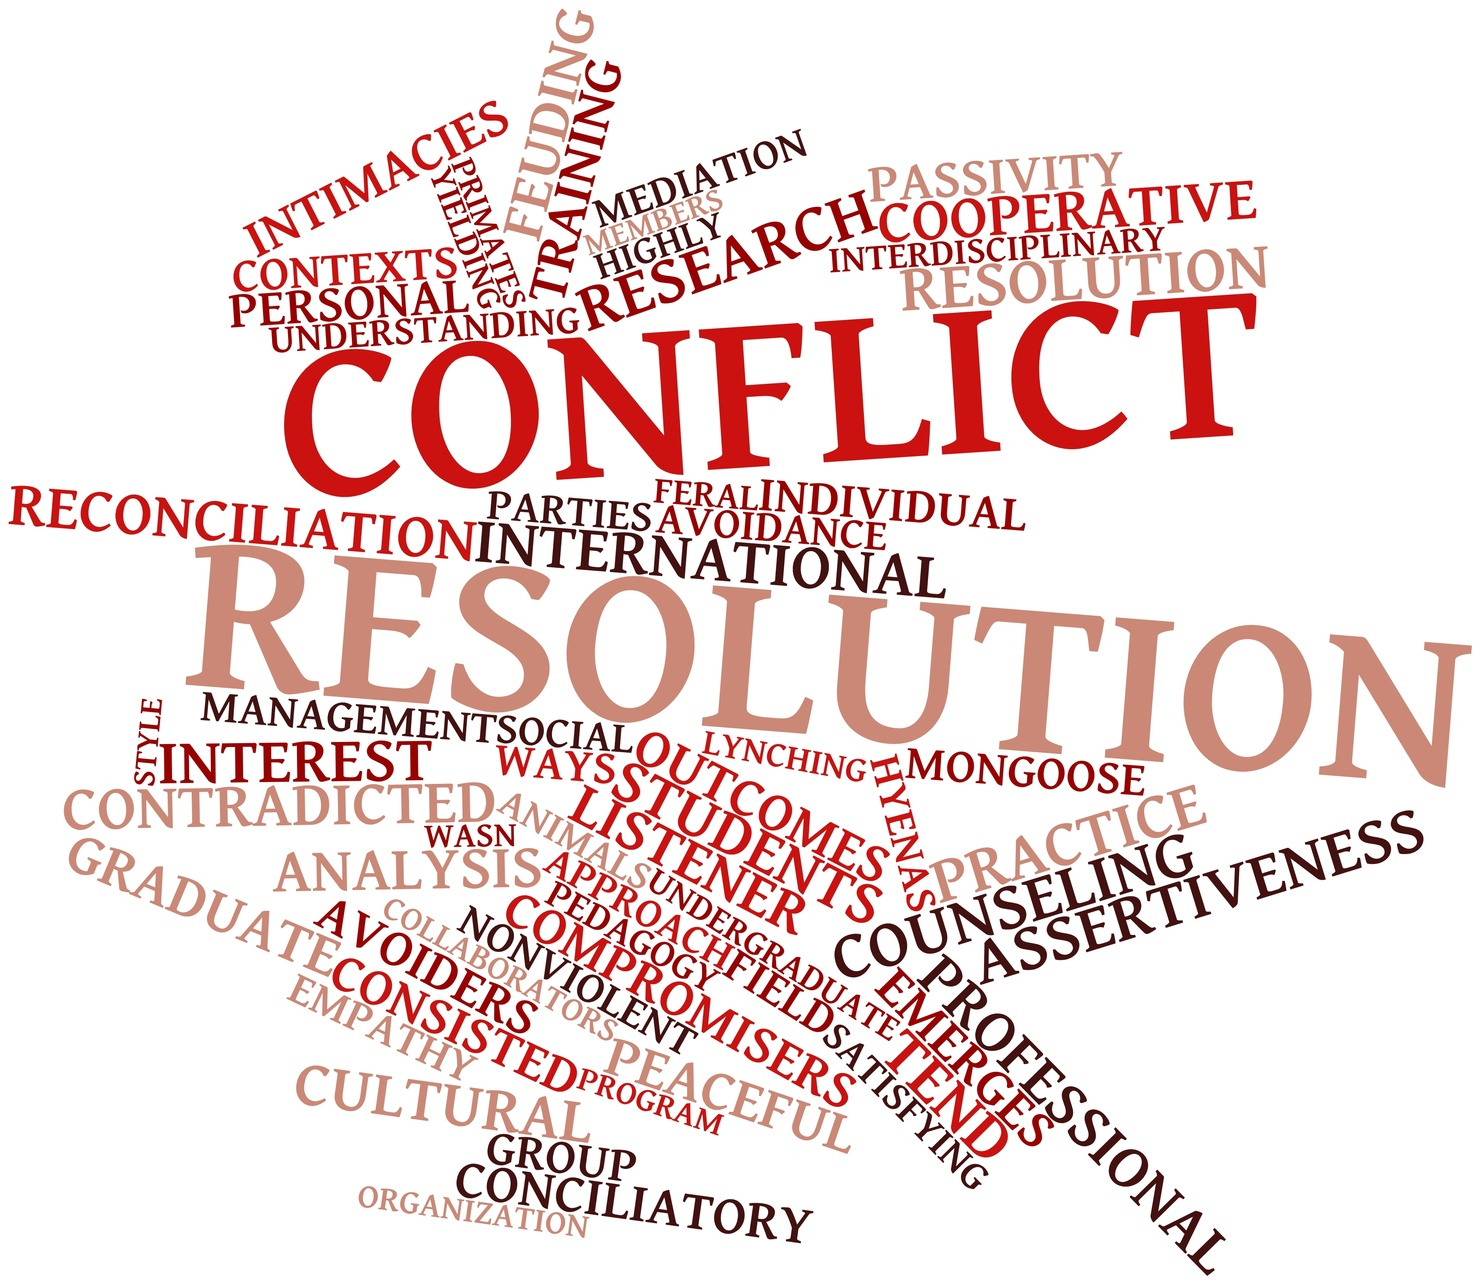 conflict resolutions Conflict resolution is the process of resolving a dispute or a conflict by meeting at least some of each side's needs and addressing their interests.